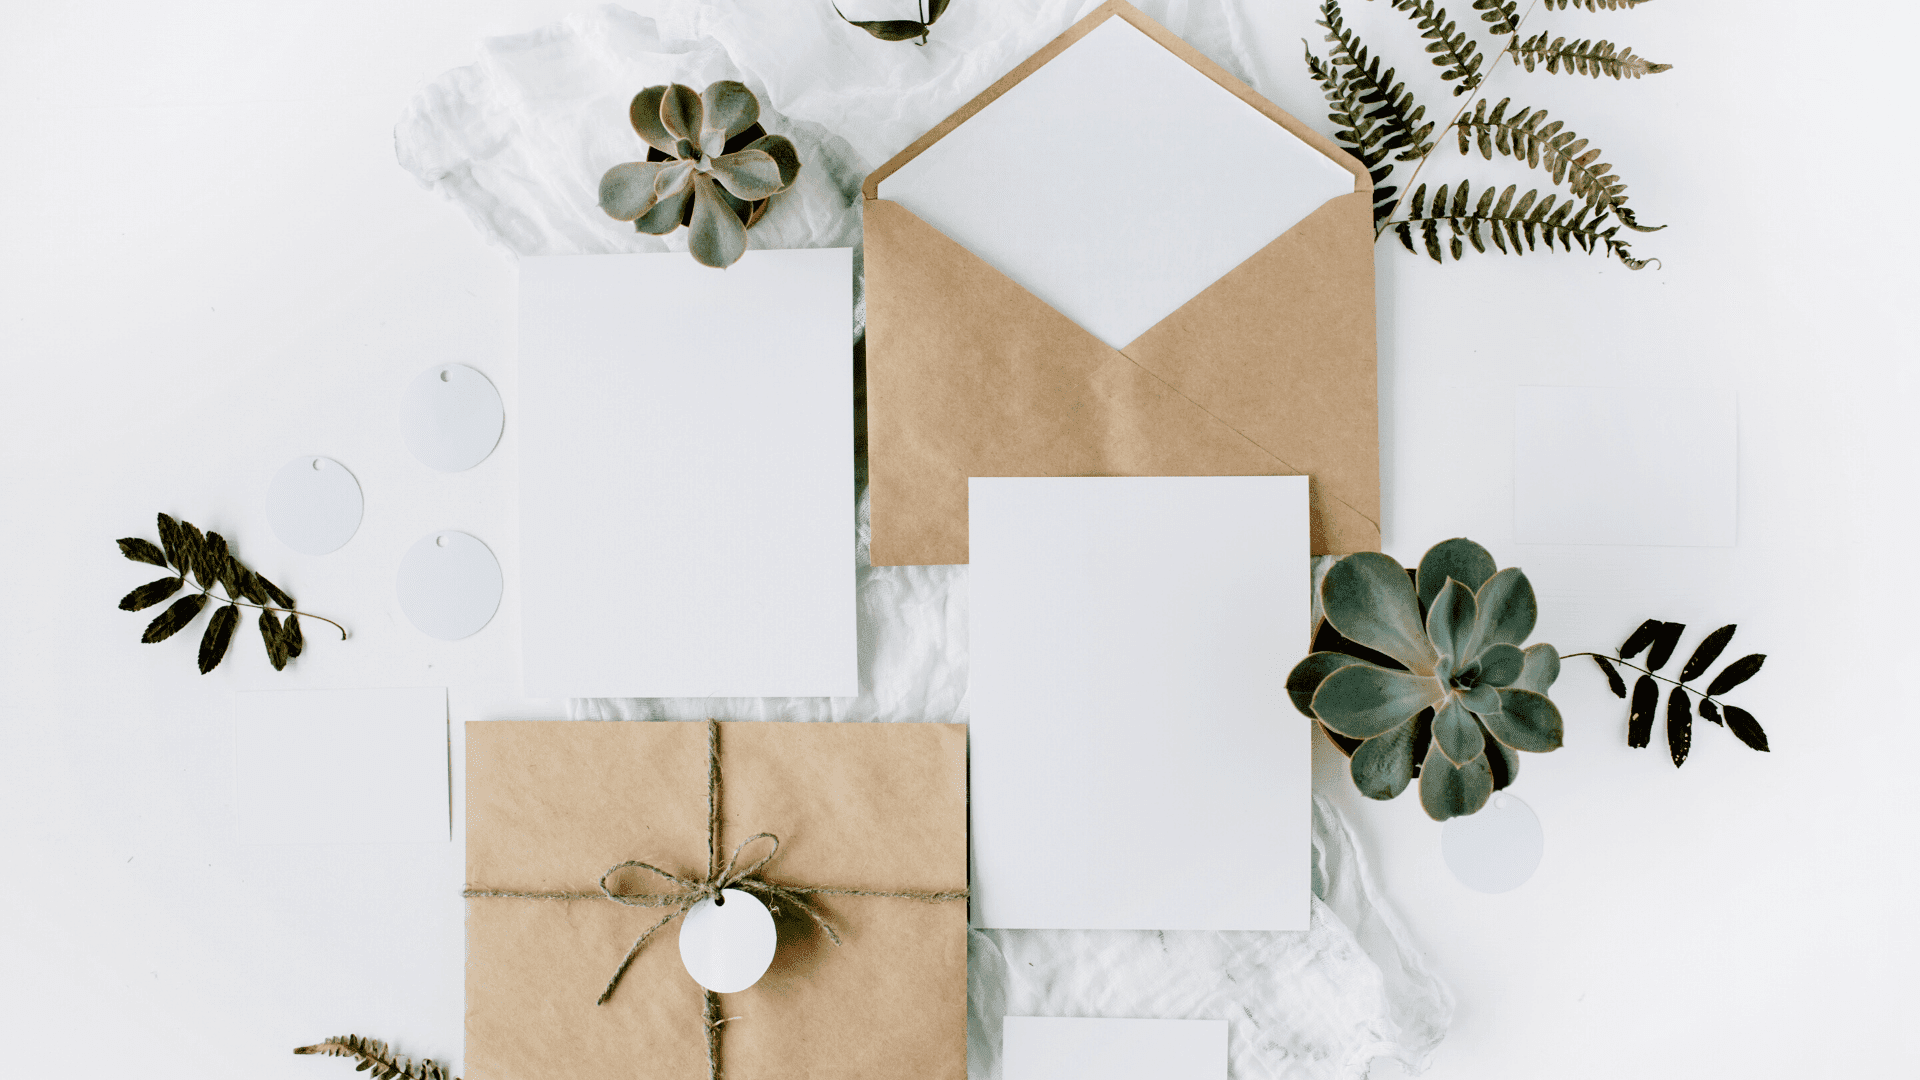 Want to make your own wedding invitations? Inside, we've got tips on how to design a wedding invitation from scratch